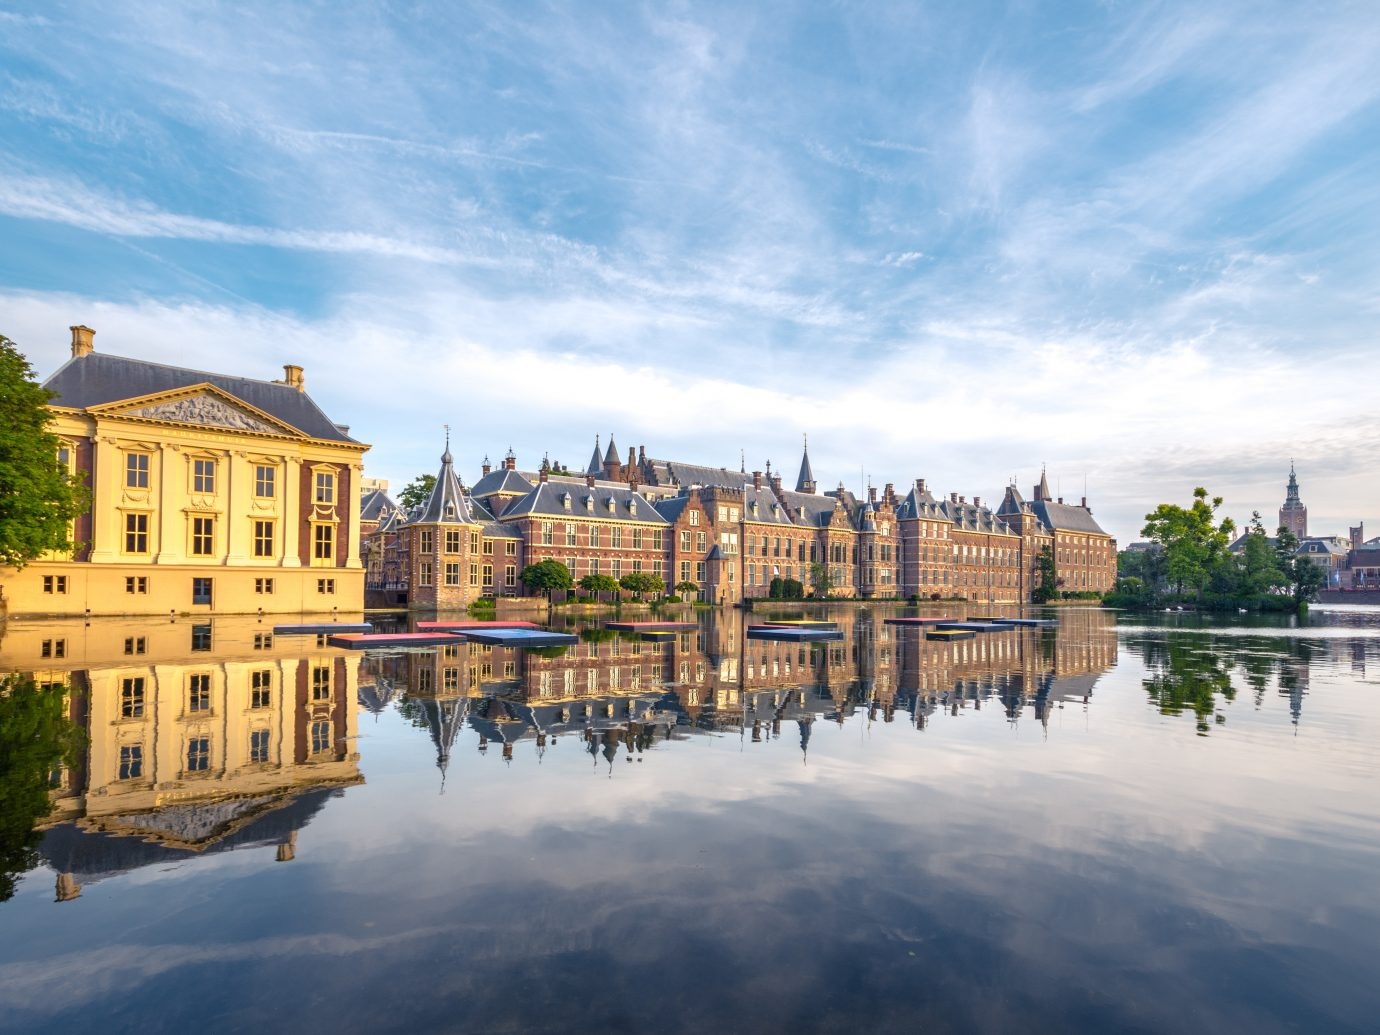 The Hofvijver Pond in The Hague, Netherlands